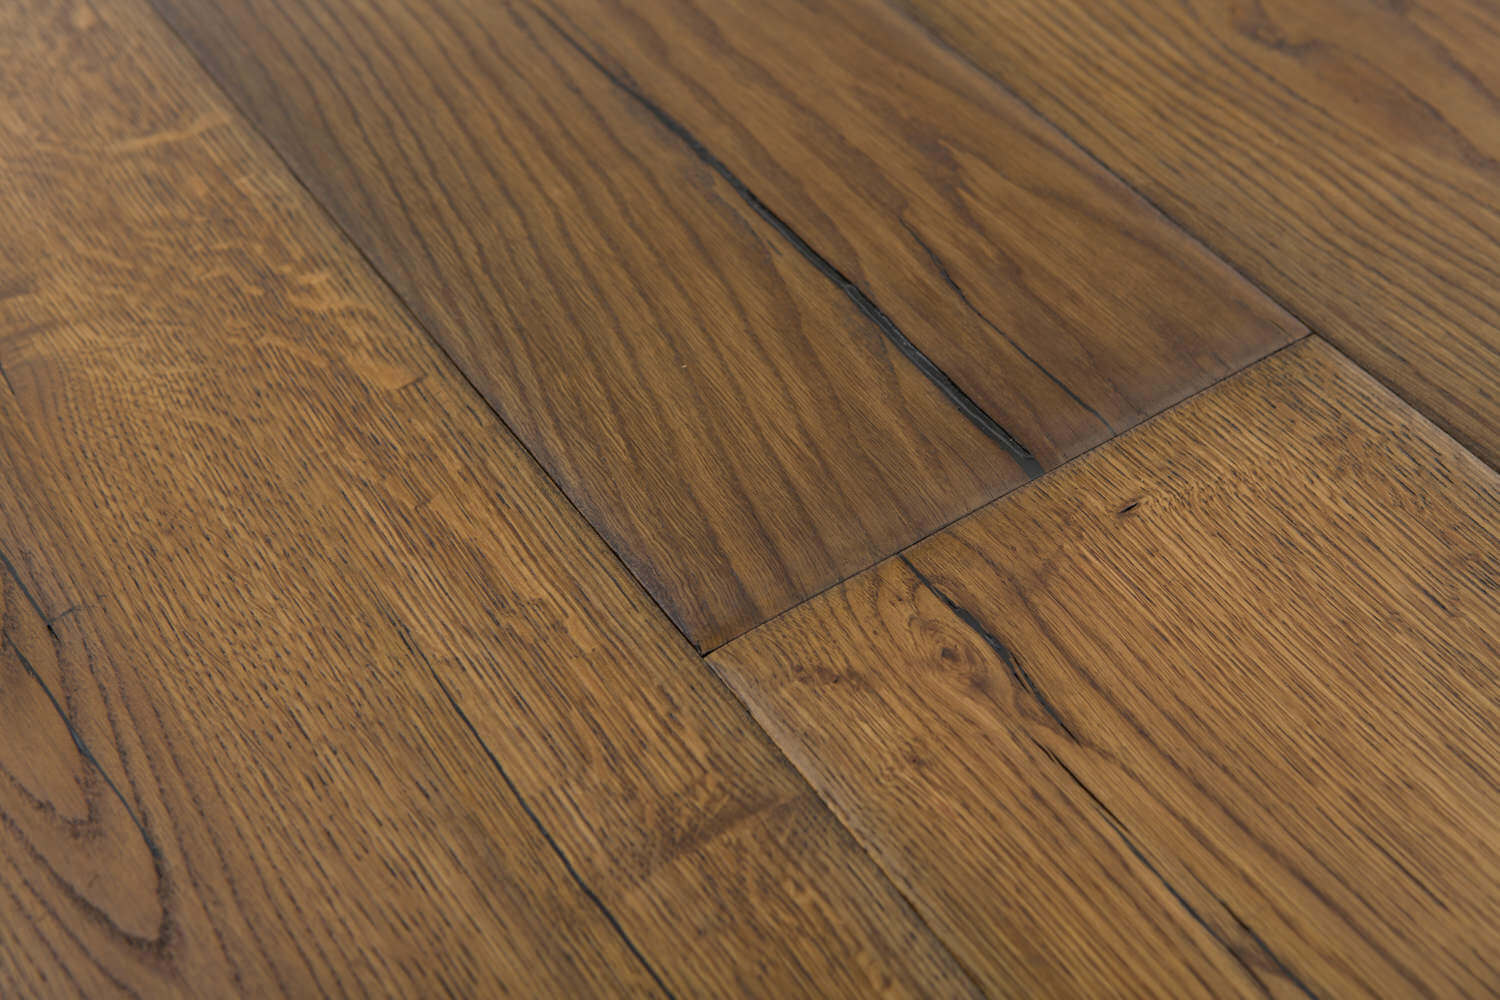 3 Oak Floor Product Antique Old English